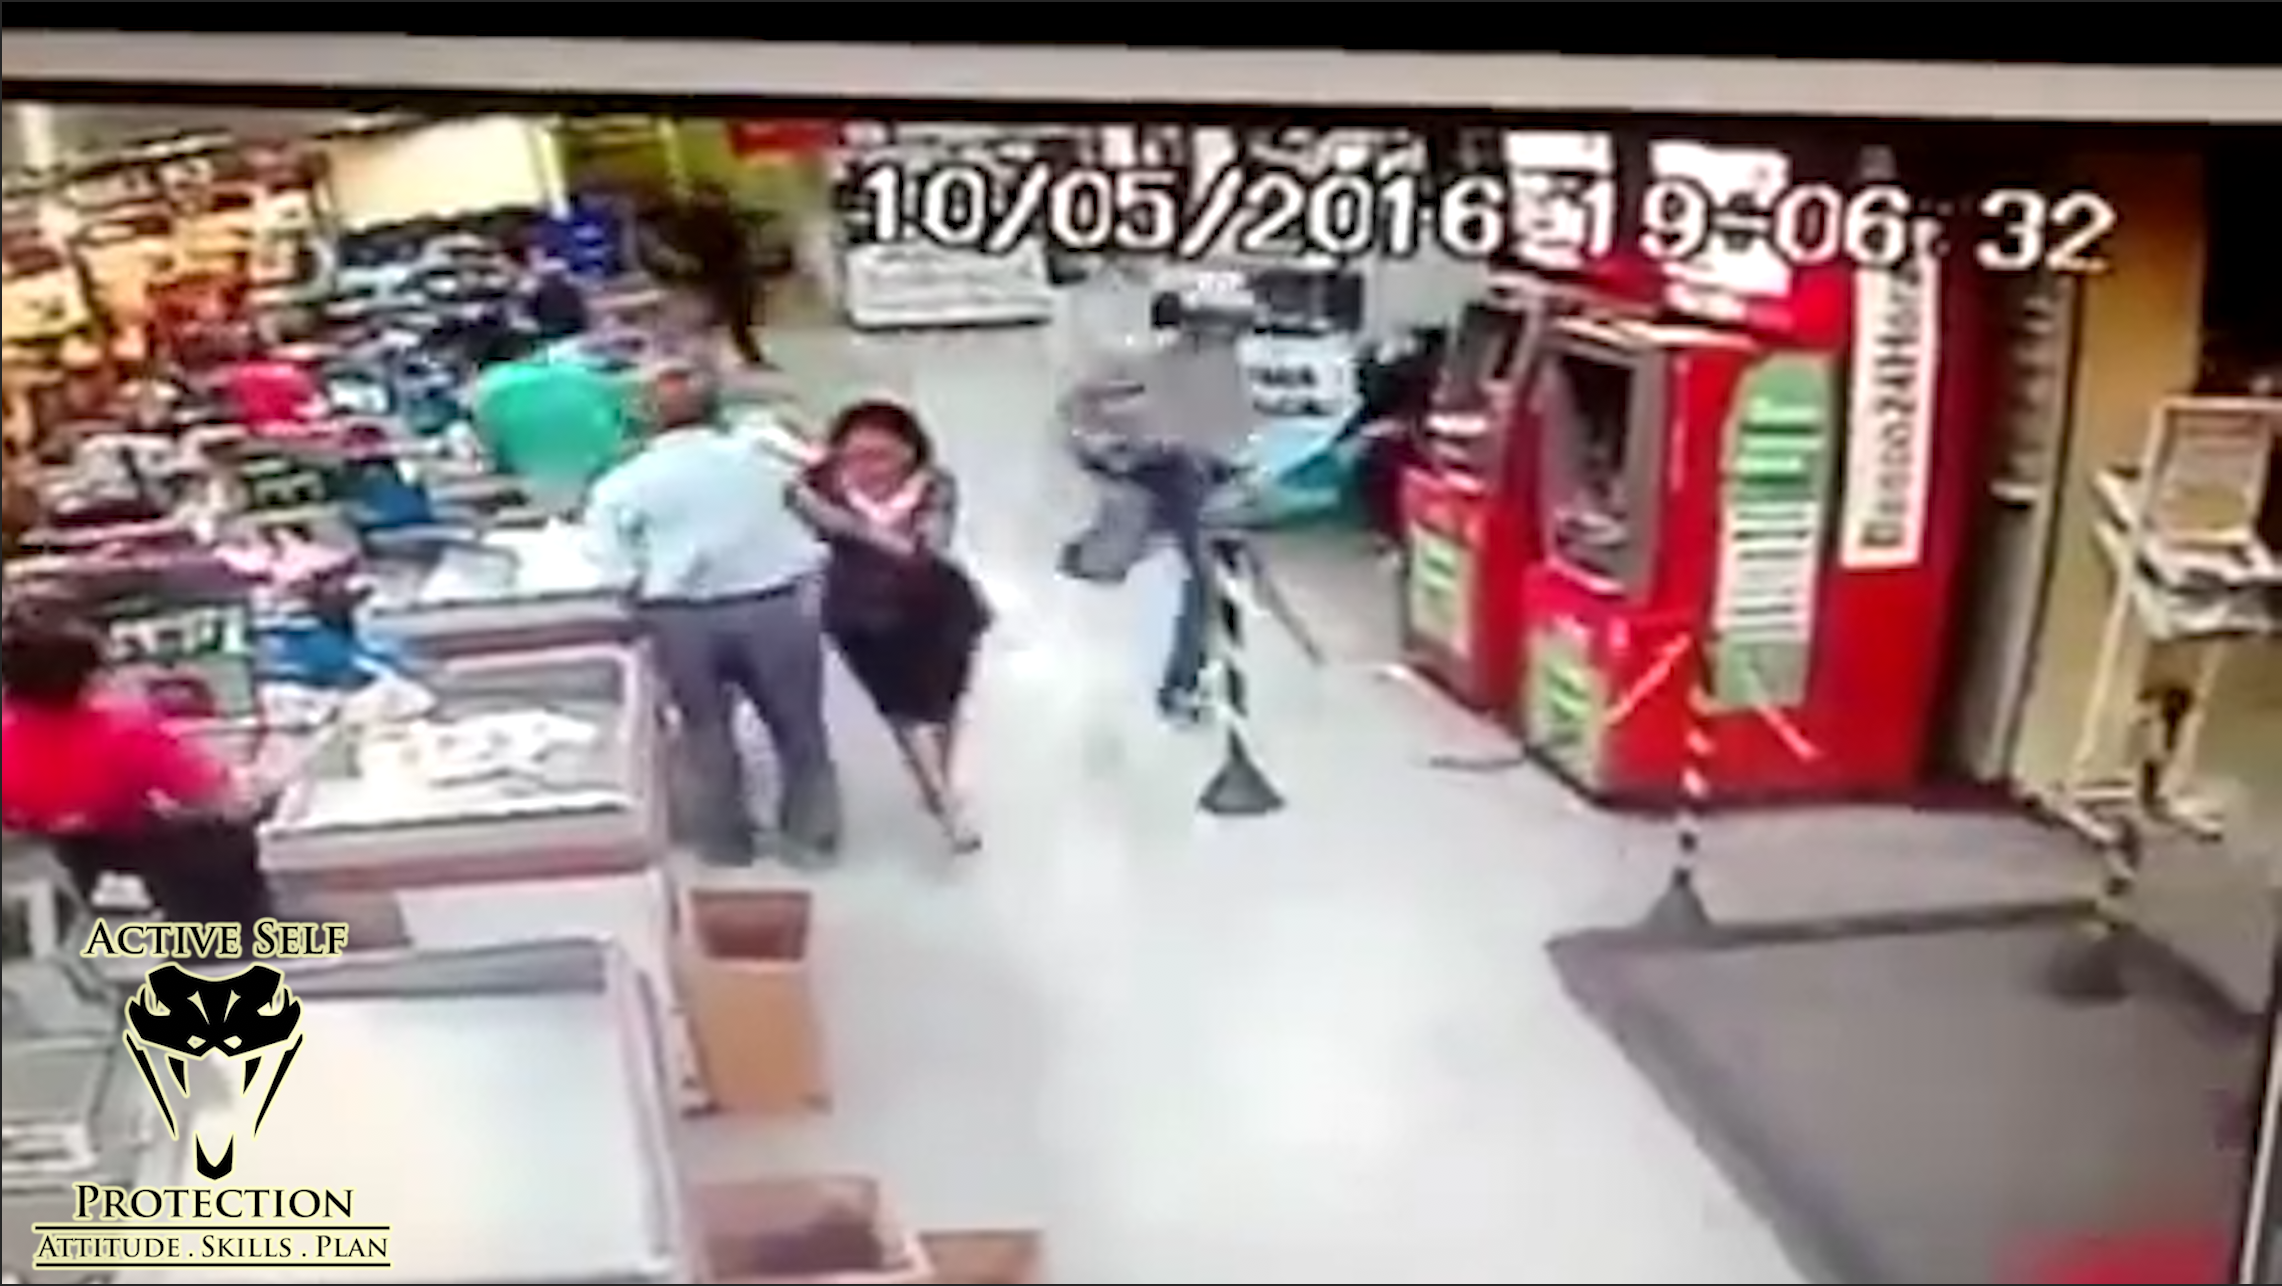 This armed guard fought the robber off